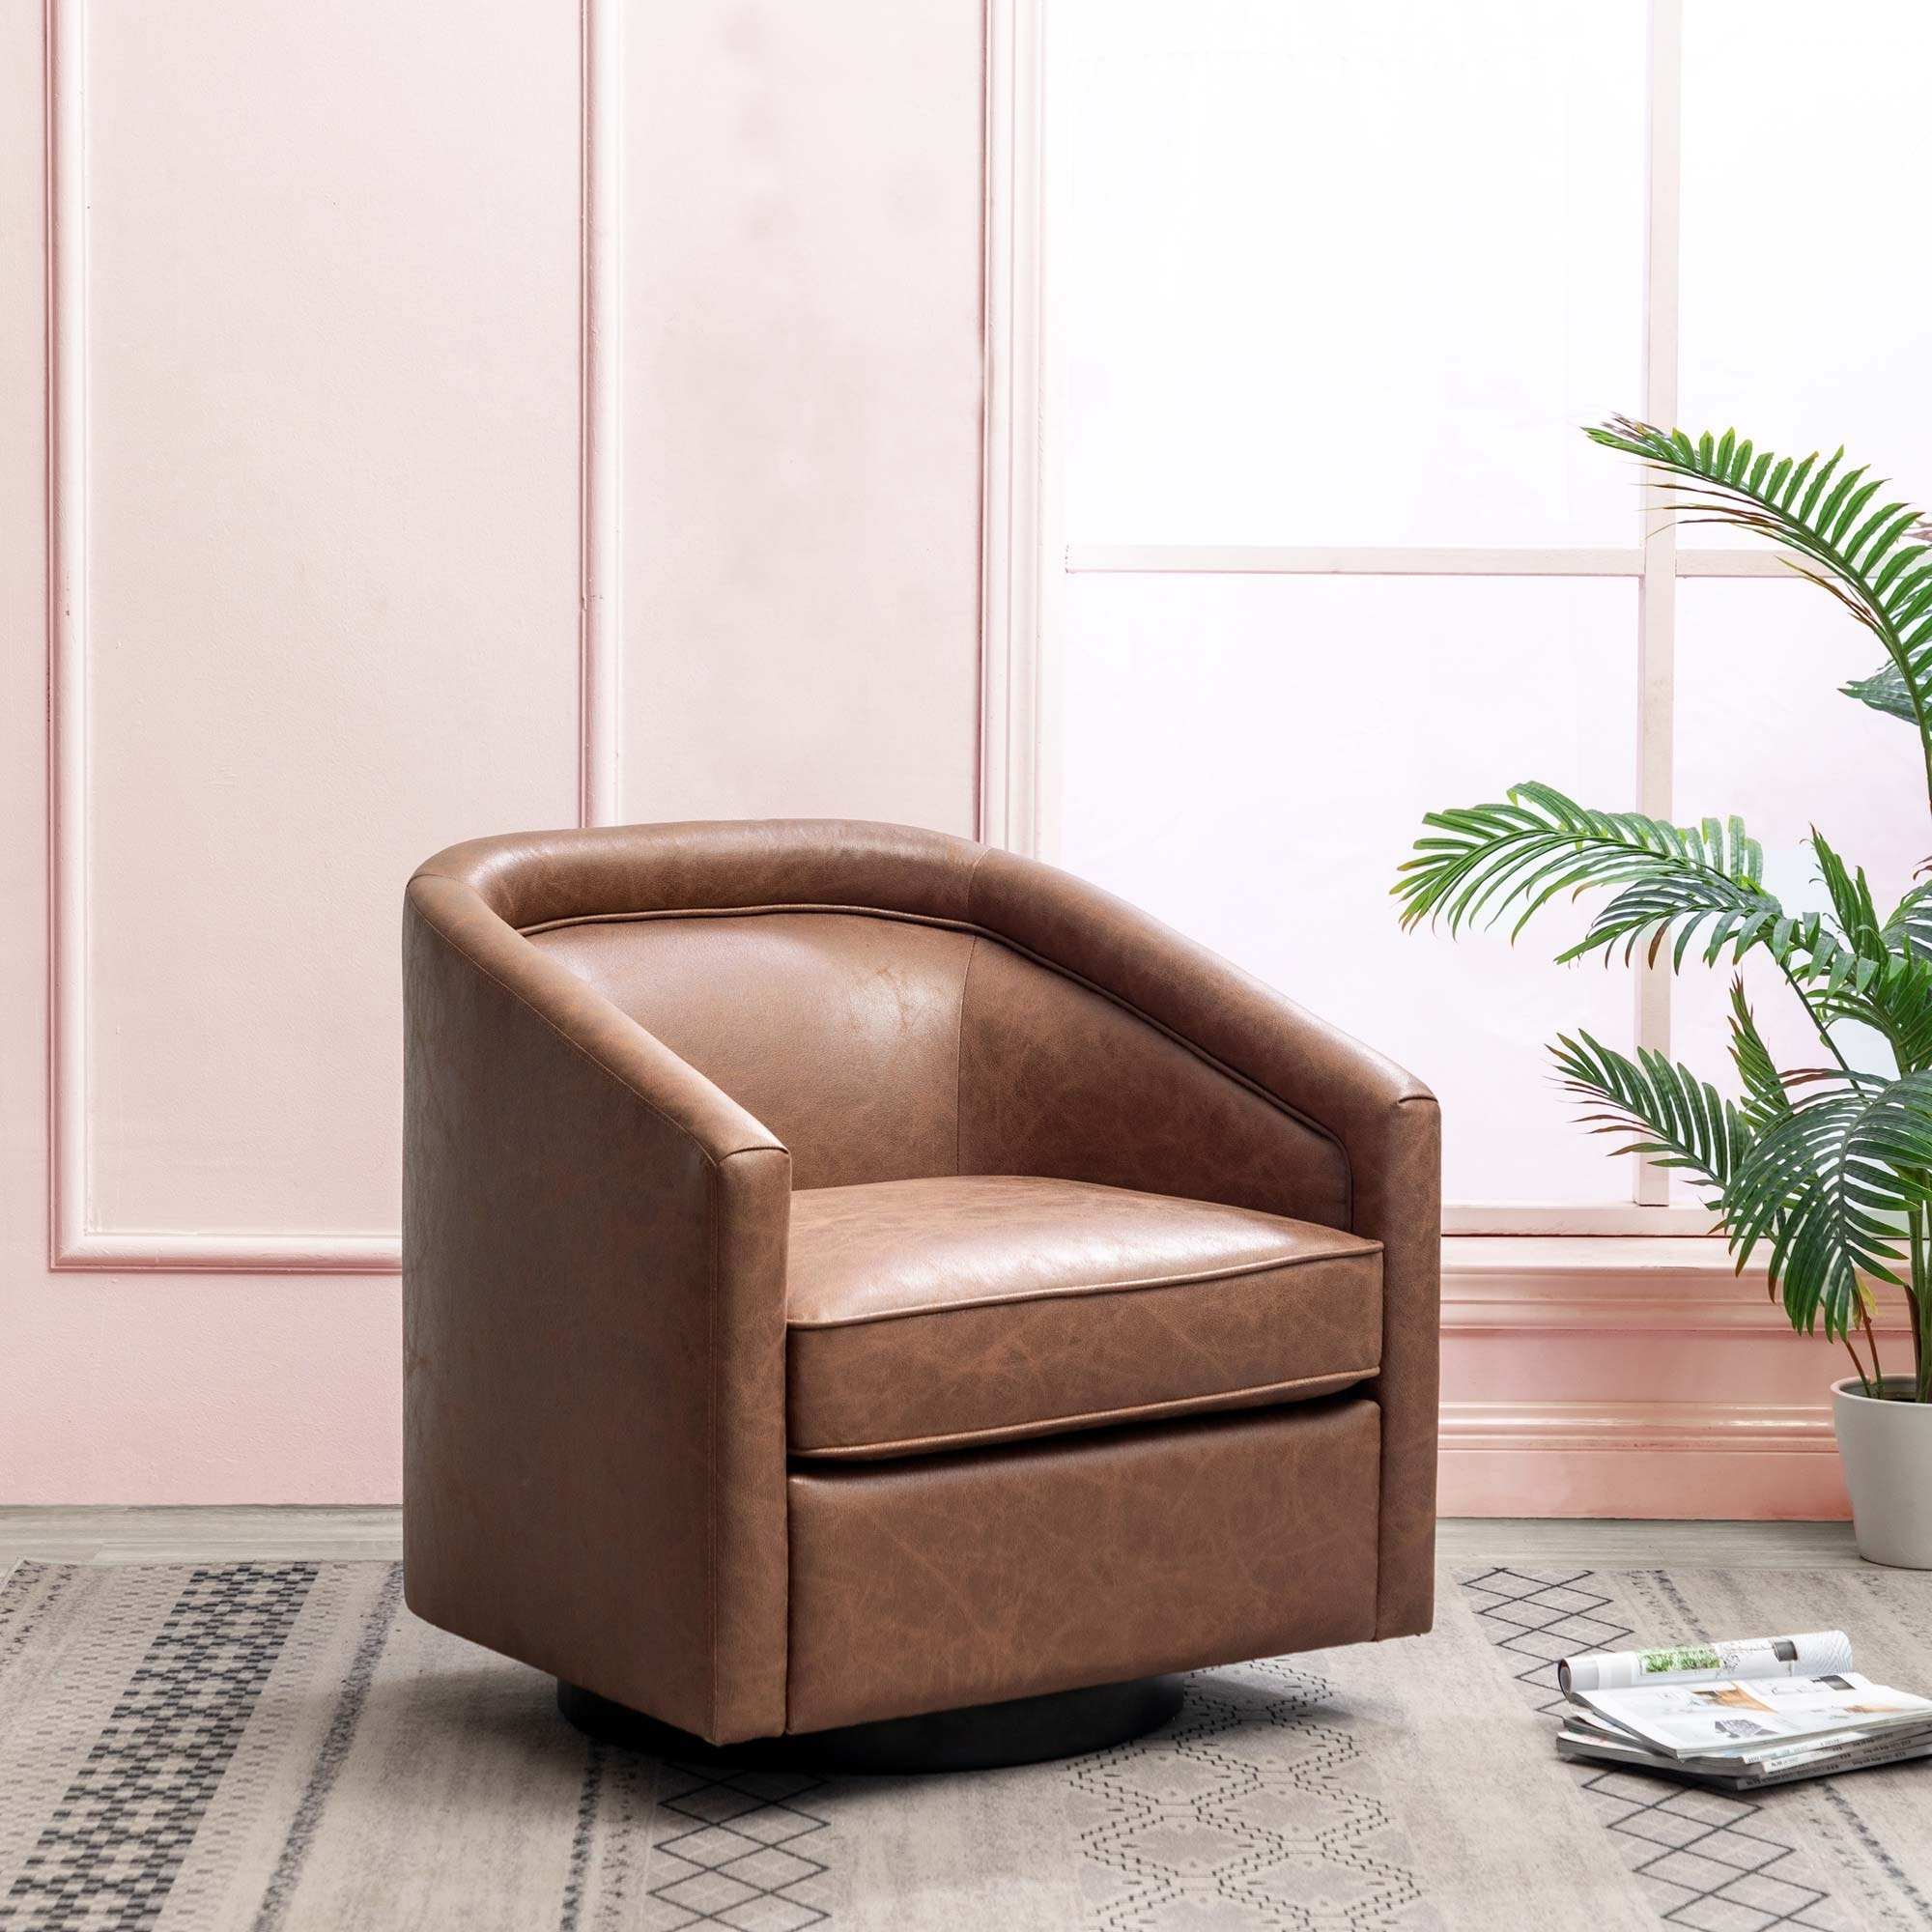 2019 Faux Leather Barrel Chairs Throughout Kotter Home Faux Leather Swivel Barrel Chair (View 7 of 20)